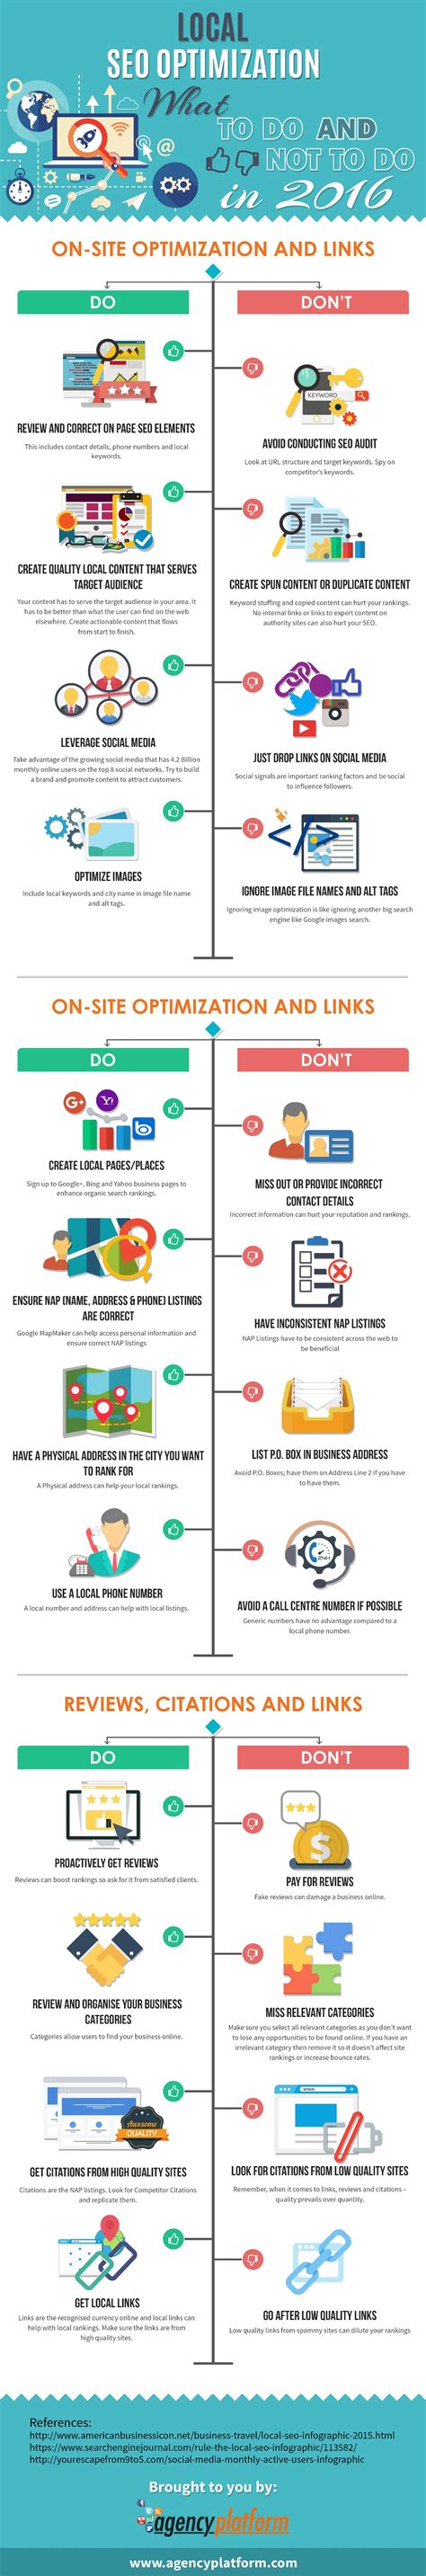 local search how local seo can help you be more searchable in your area